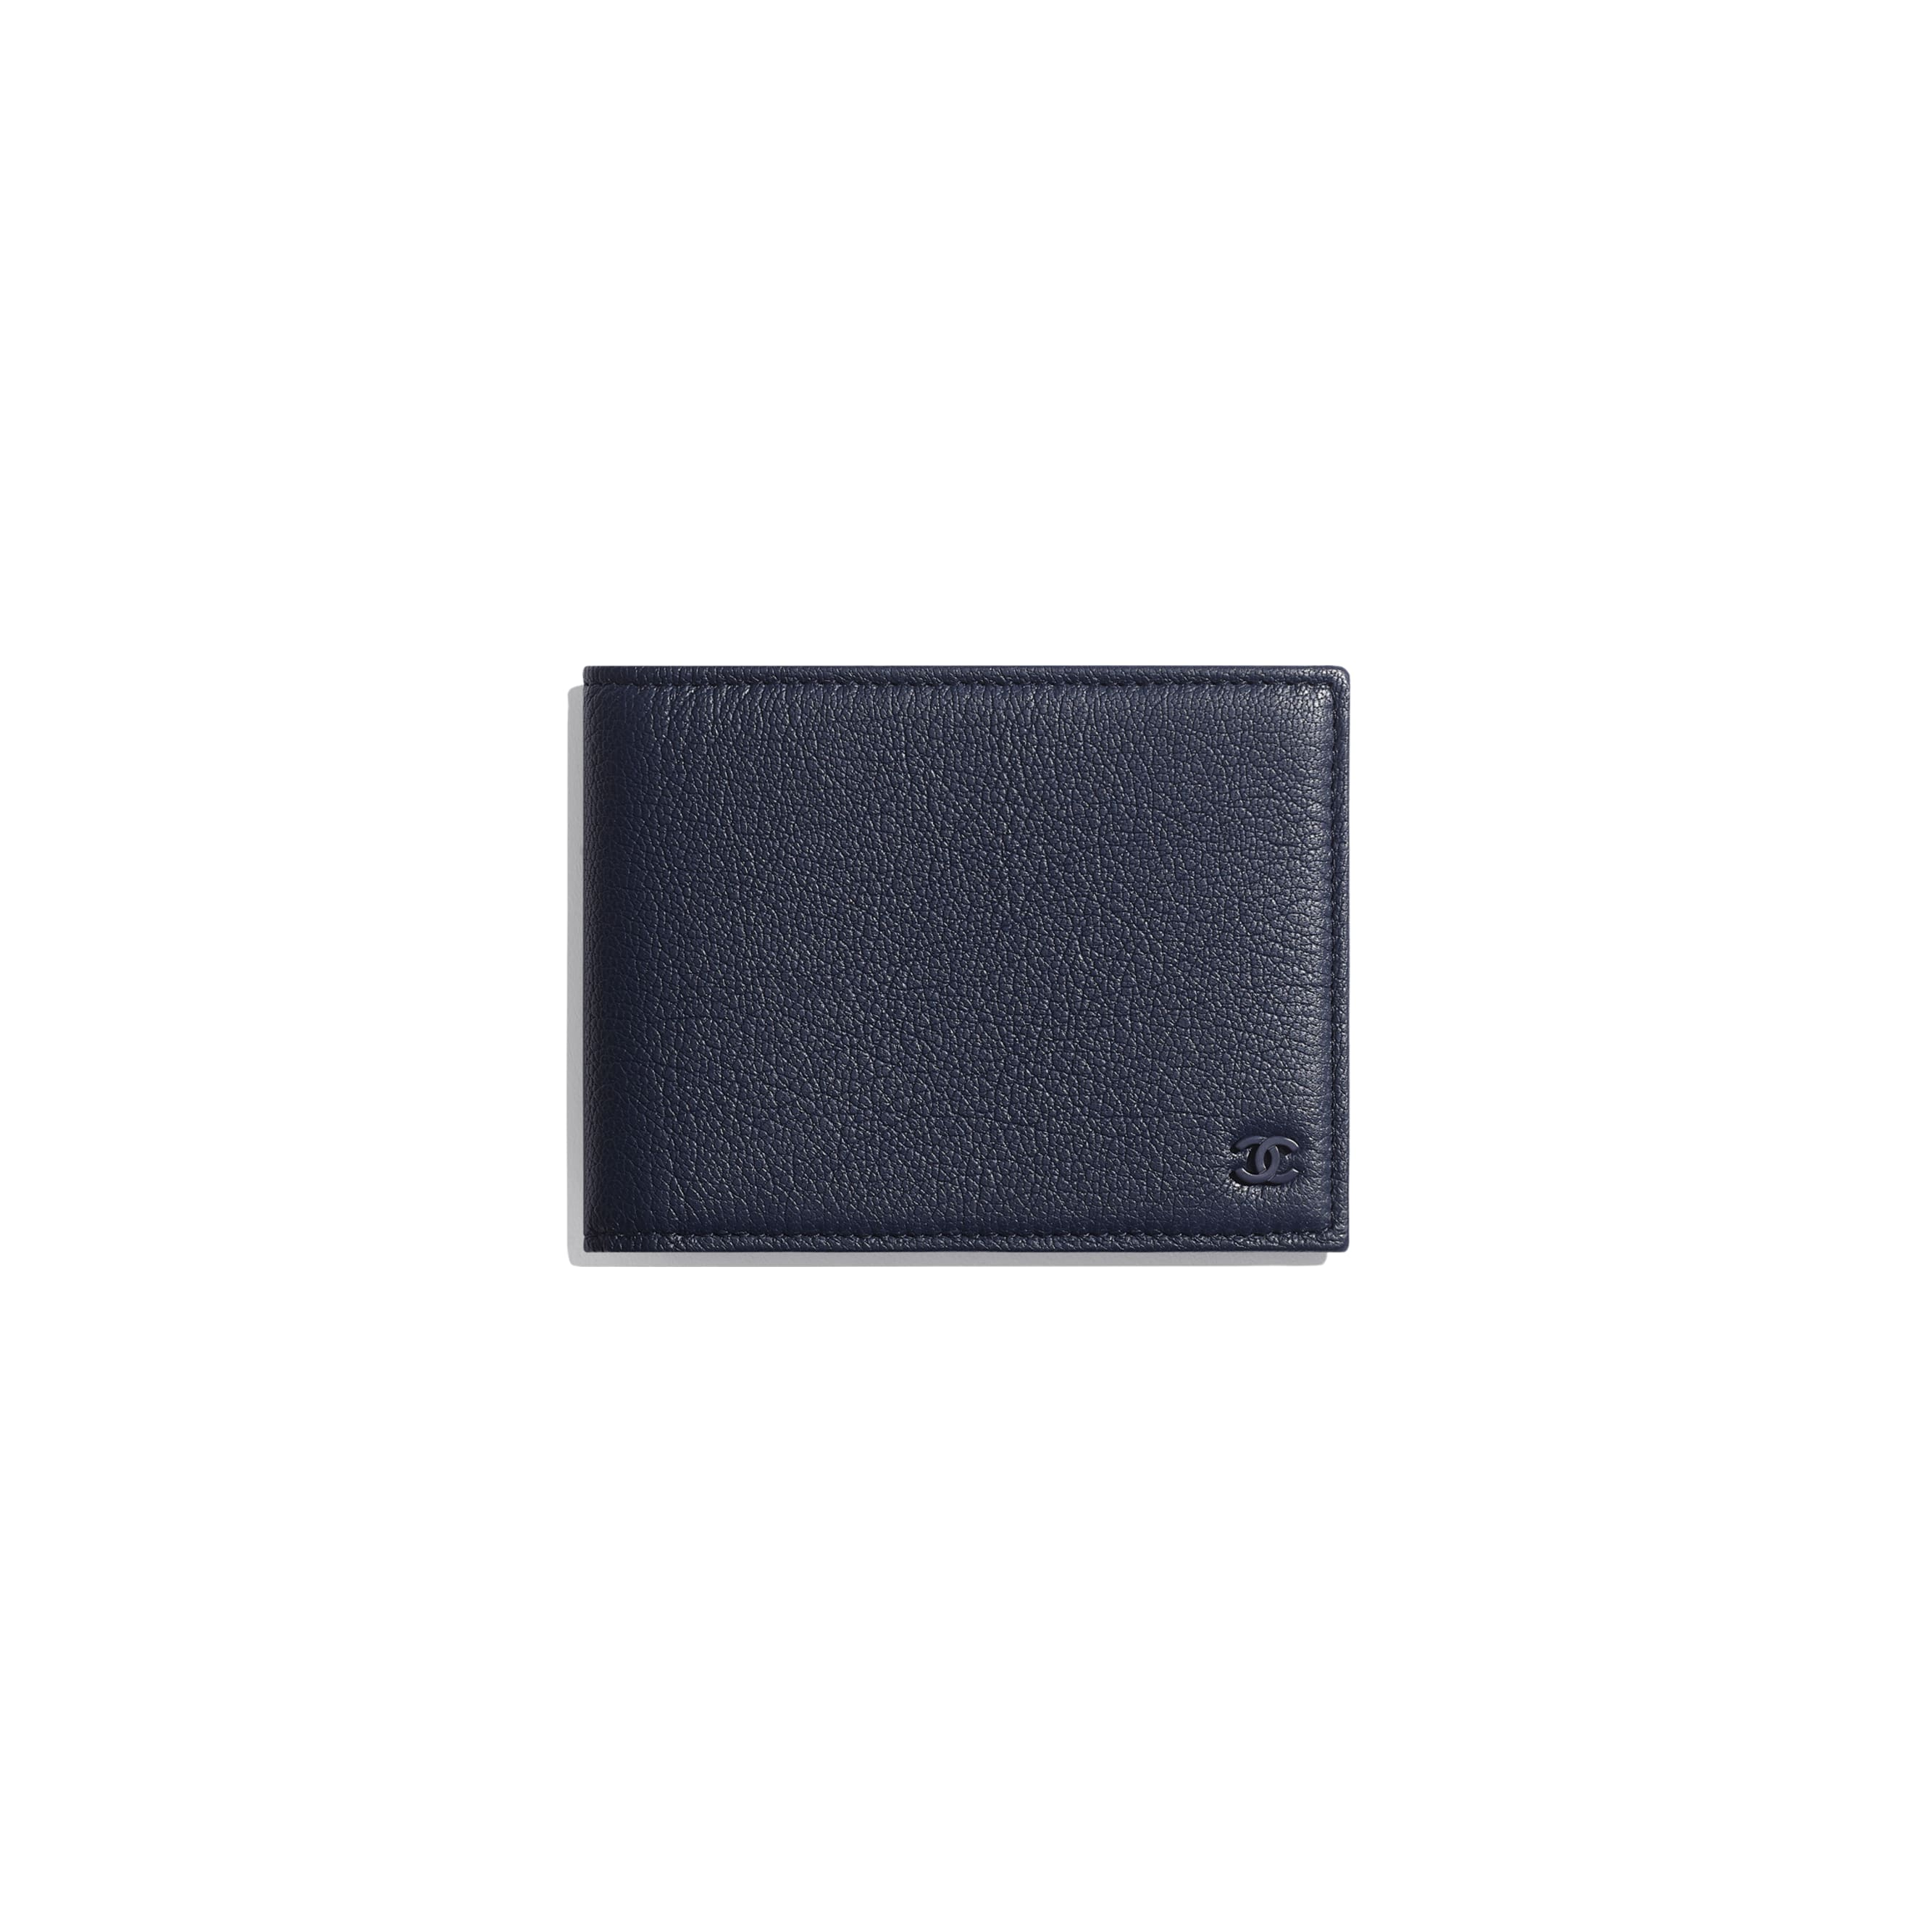 Small Flap Wallet - Navy Blue - Goatskin & Lacquered Silver-Tone Metal - Default view - see standard sized version